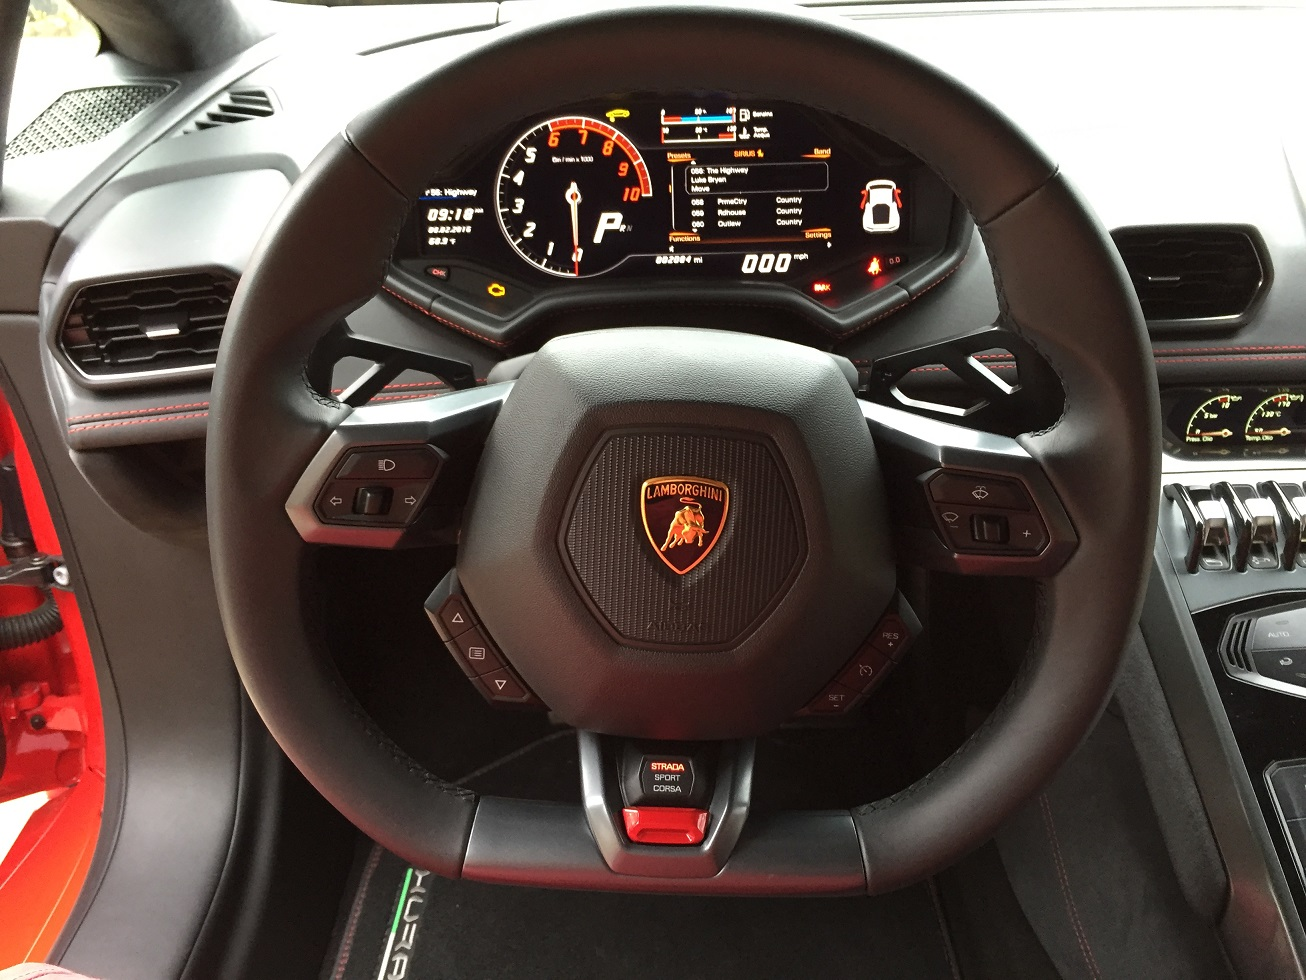 The steering wheel as command center